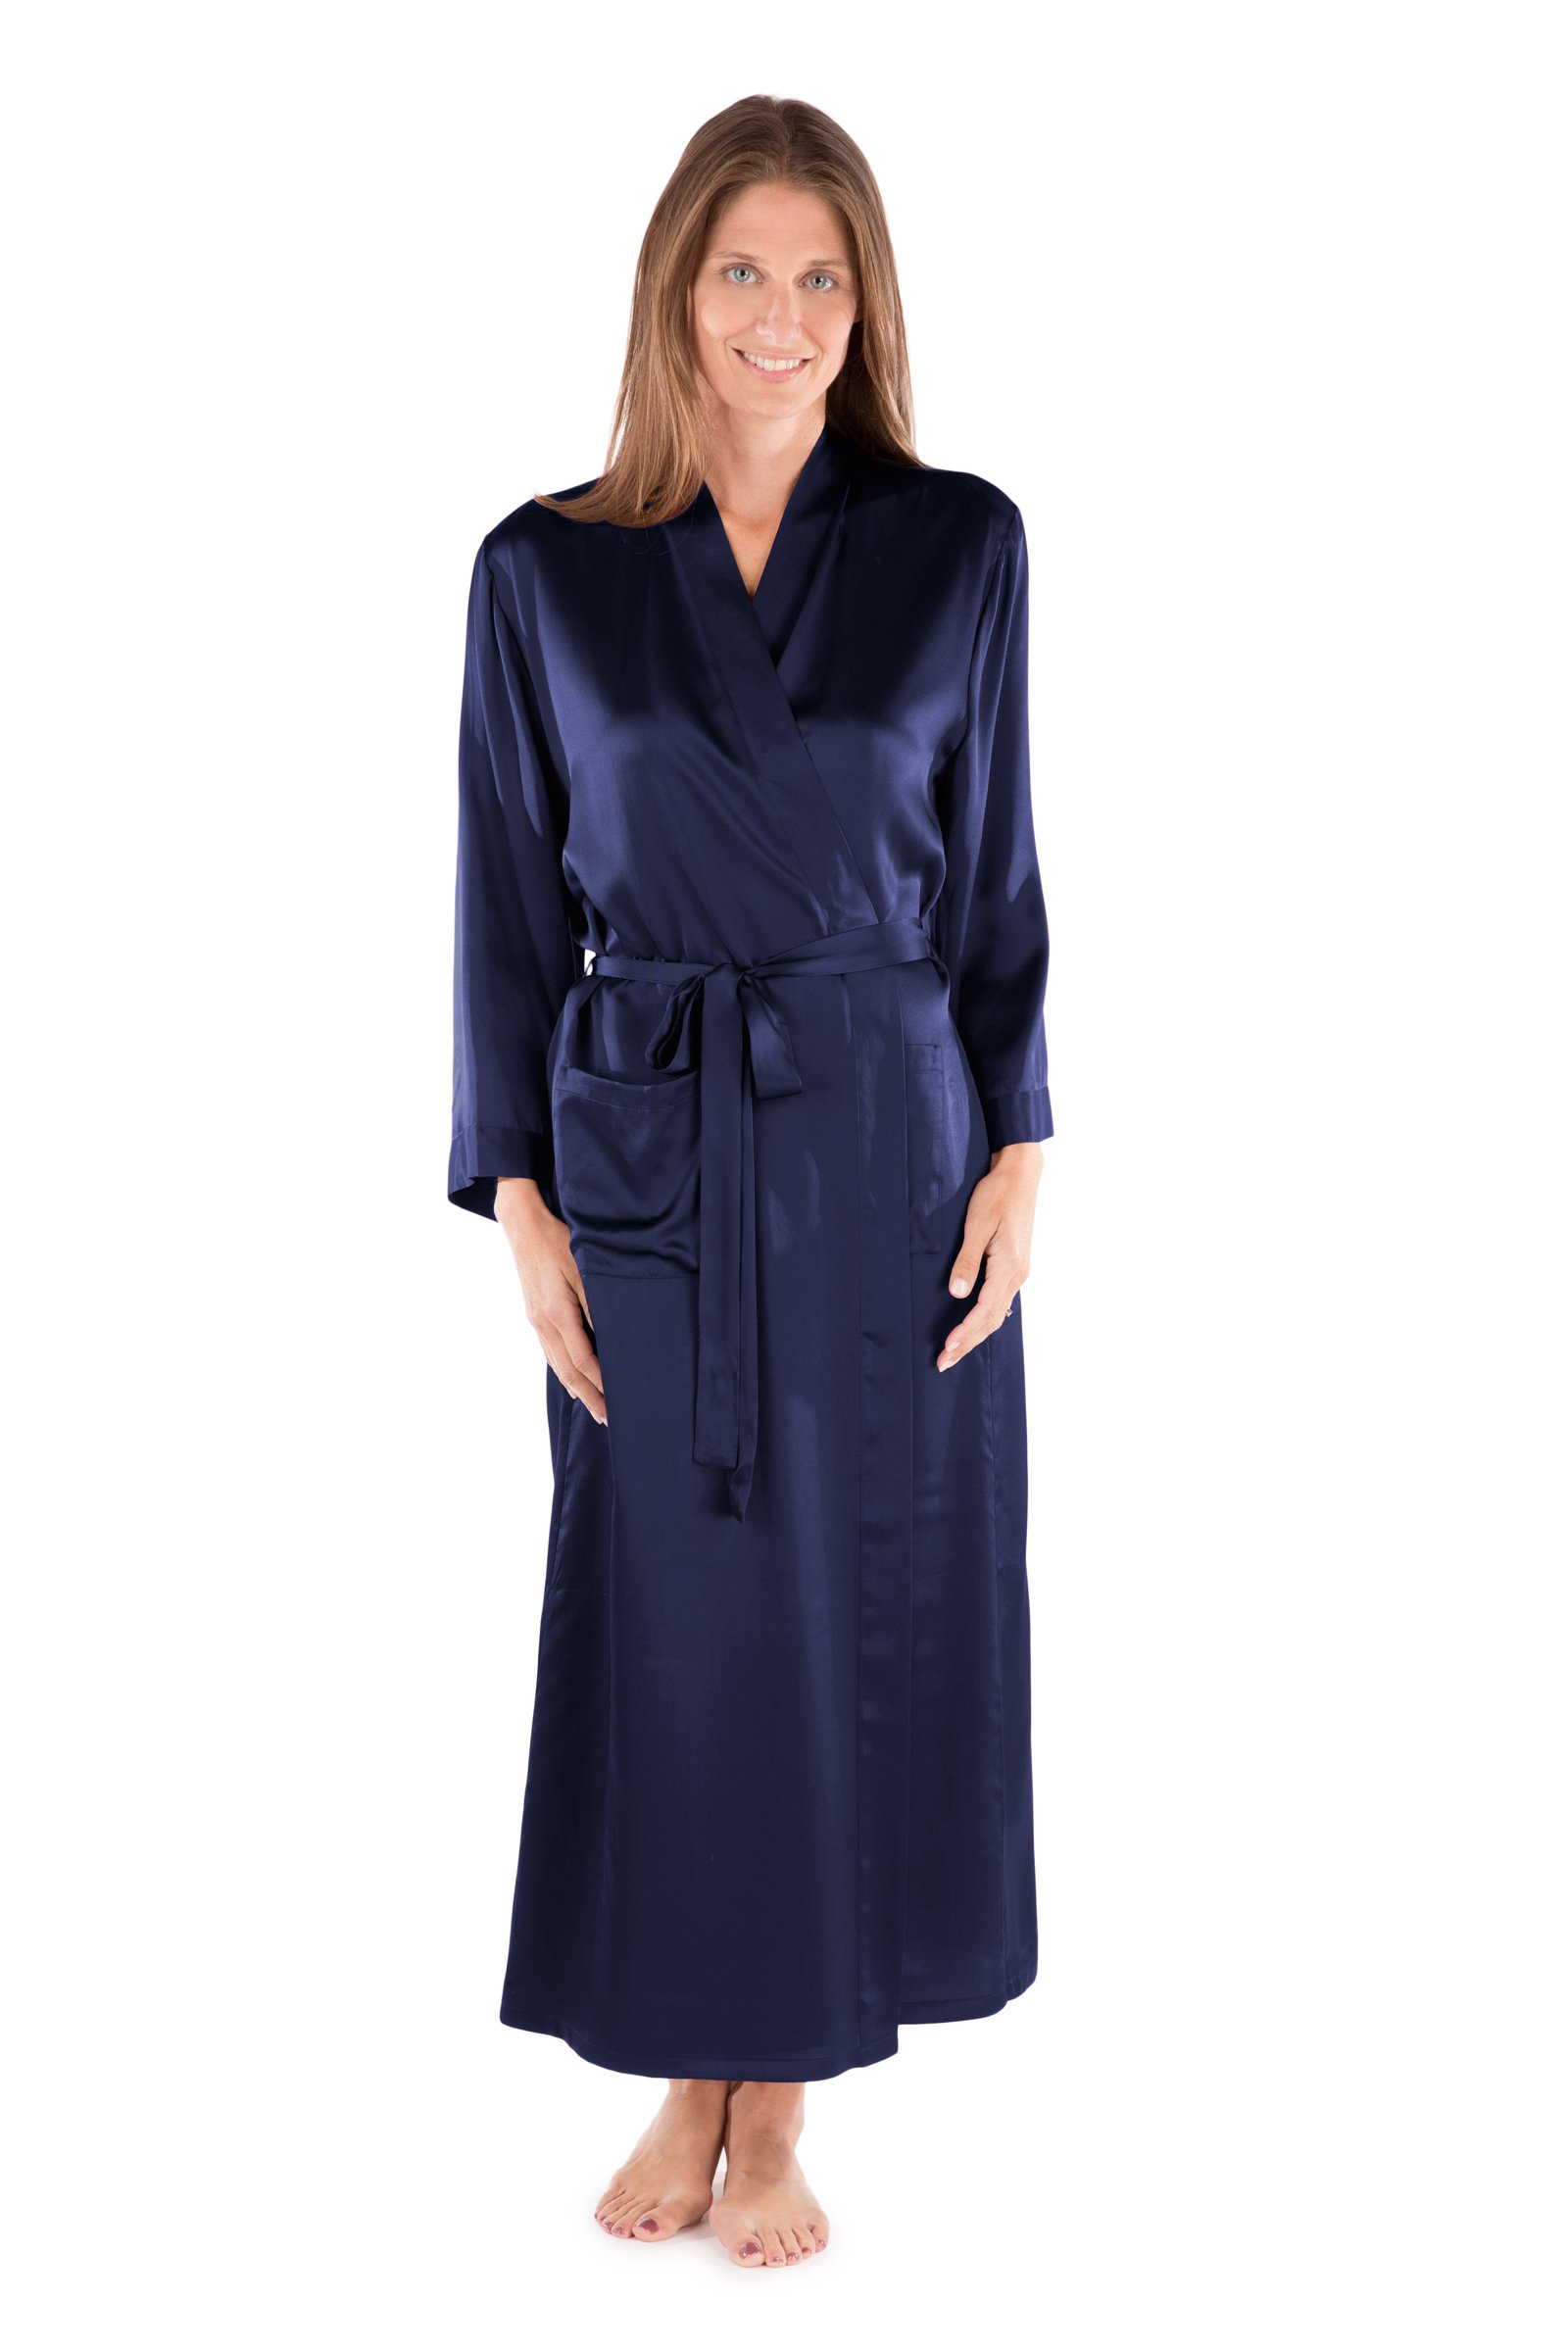 TexereSilk Women's Luxury Long Silk Robe (Gulf Blue, Large/X-Large) Romantic Mother's Day Gifts For Wife Fiancee WS0101-GFB-LXL